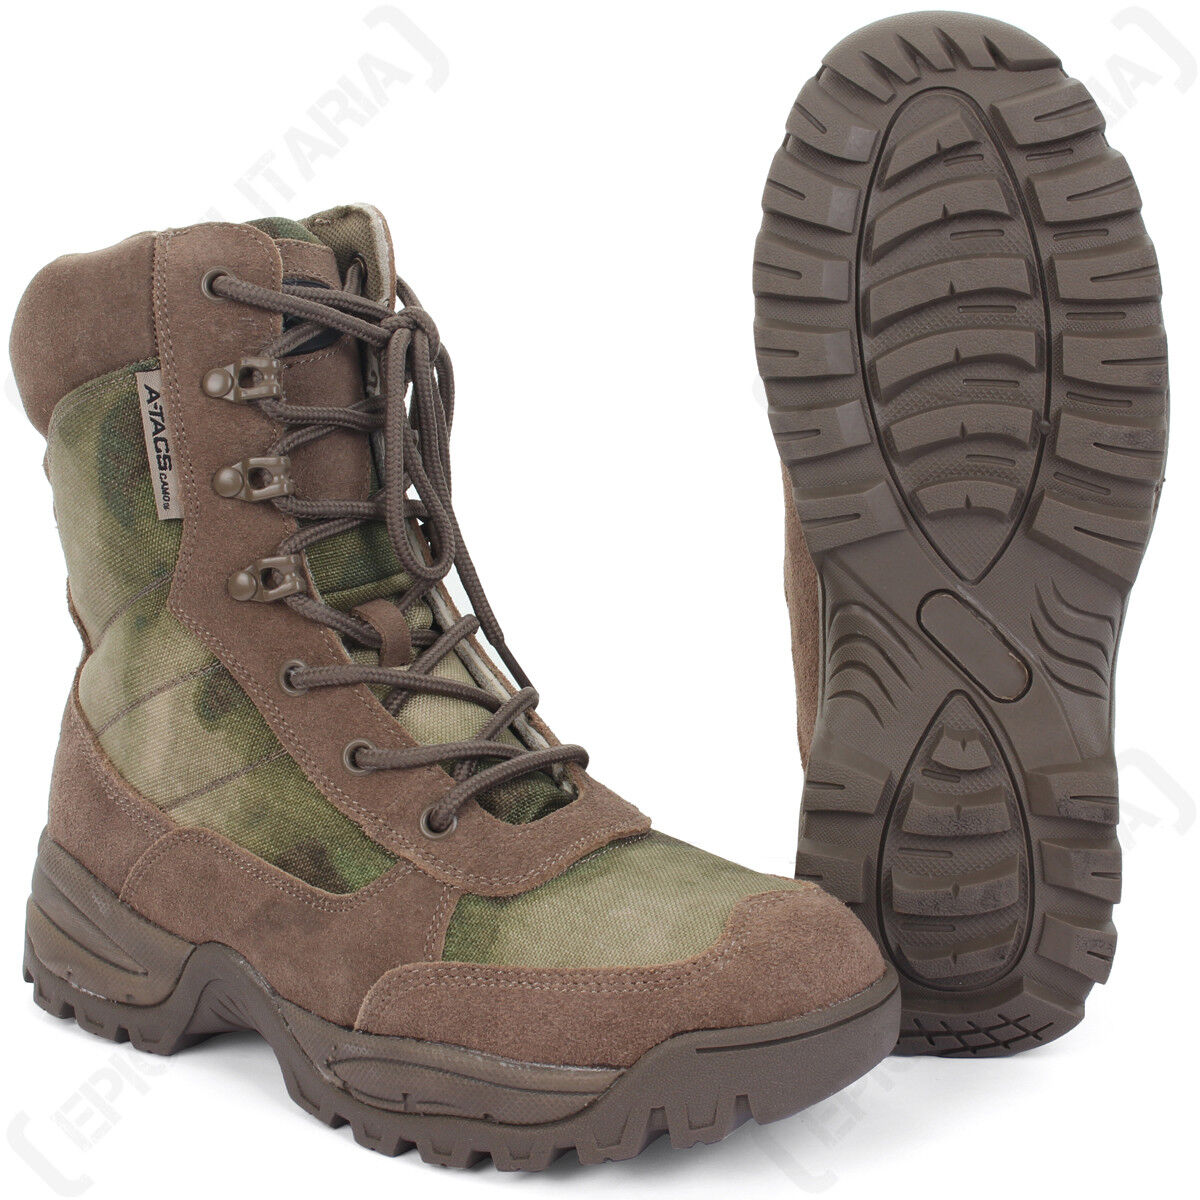 Mil-Tacs FG Pattern Side Zip Tactical Army Boots - ALL SIZES - Suede Leather NEW